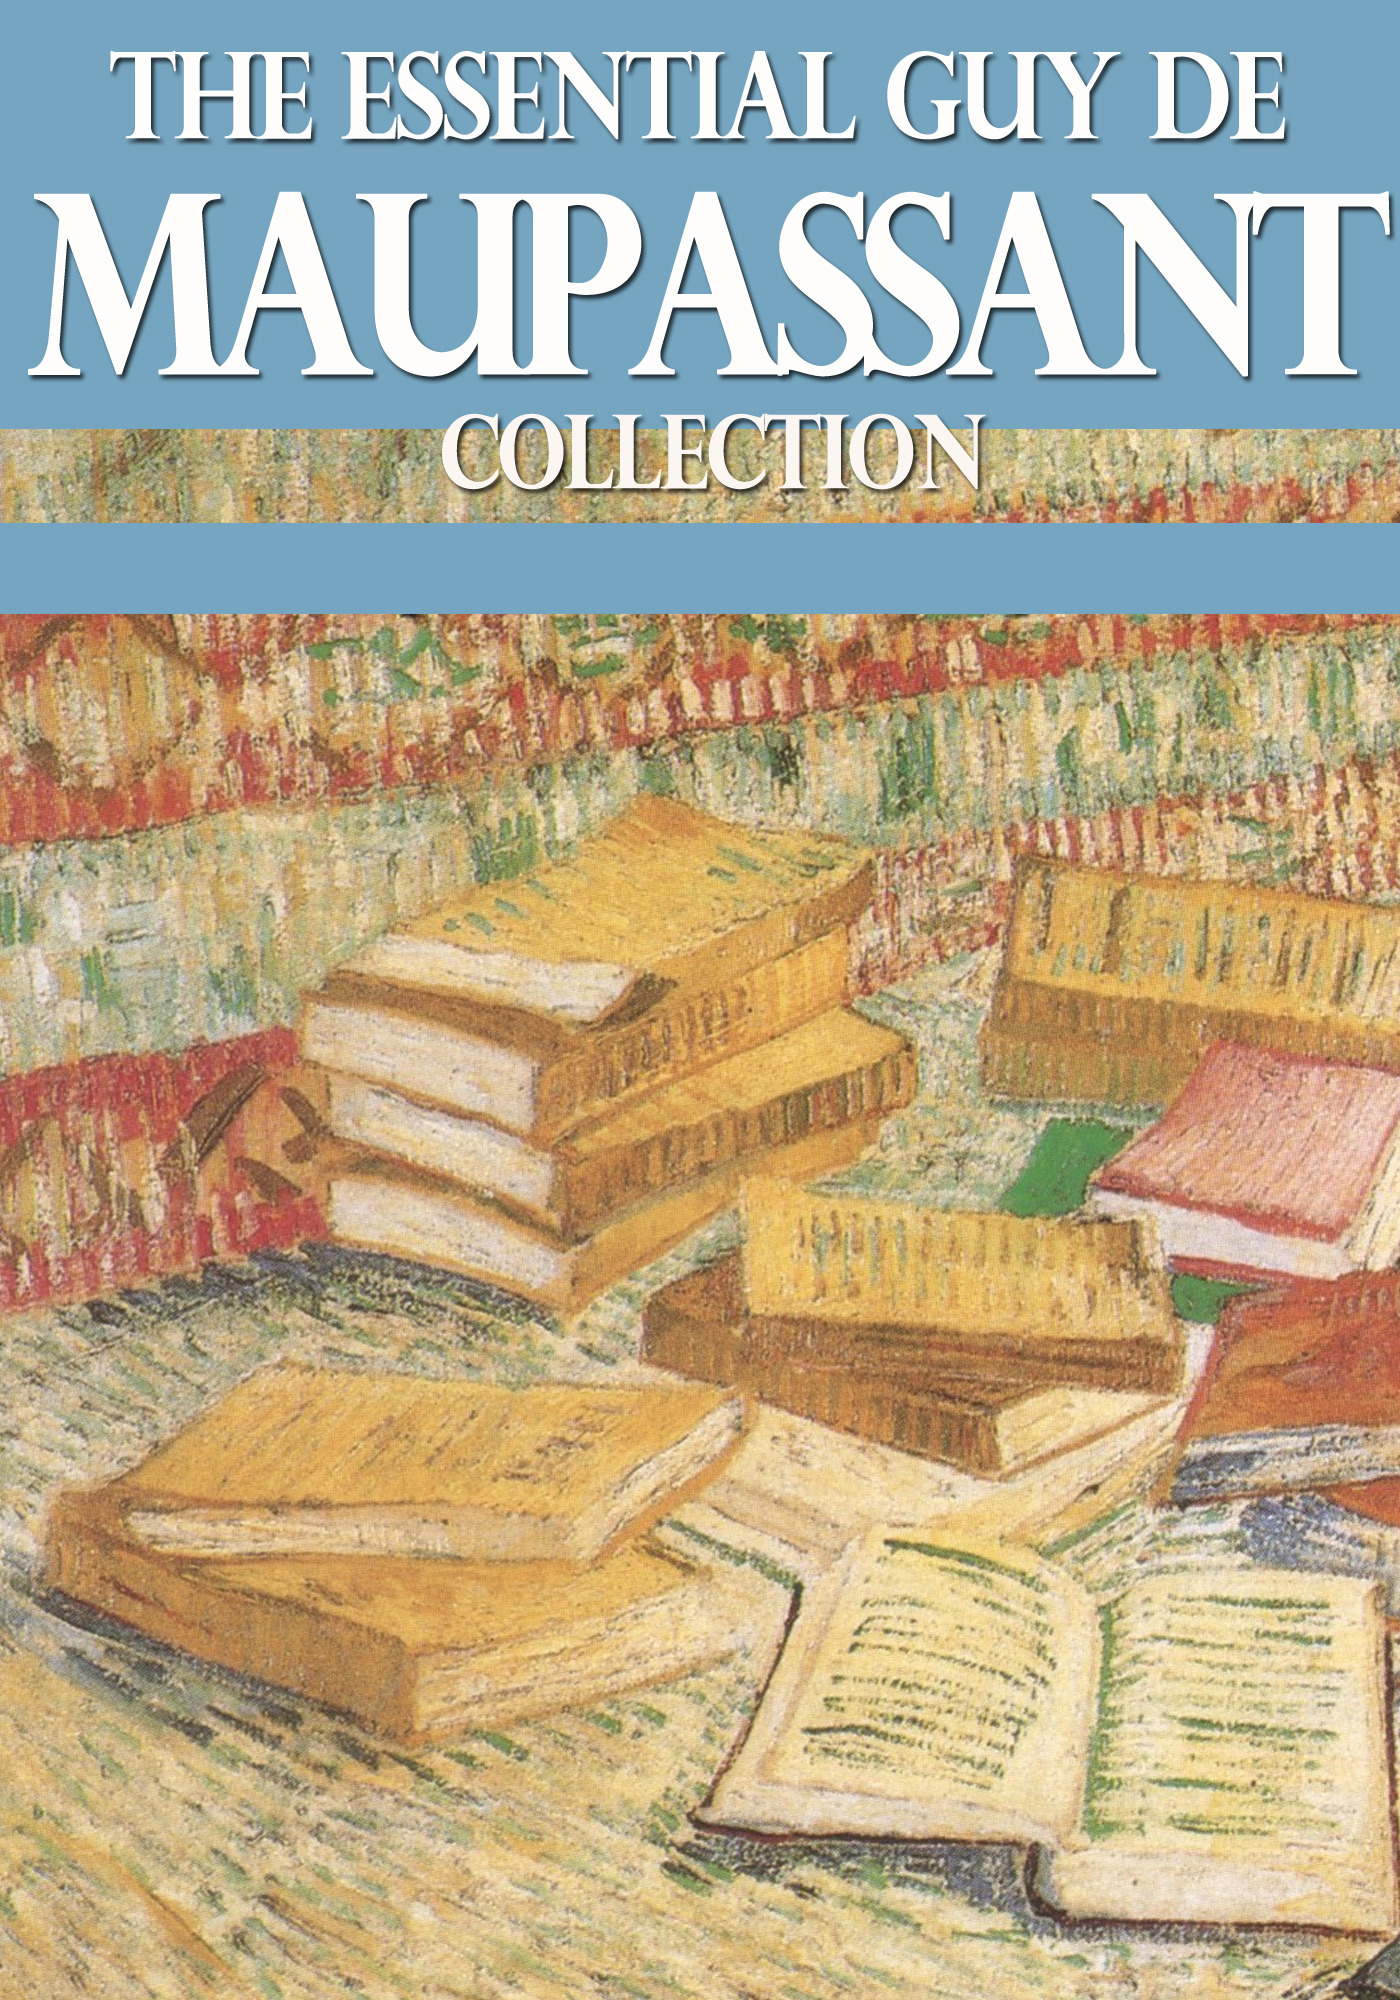 The Essential Guy de Maupassant Collection